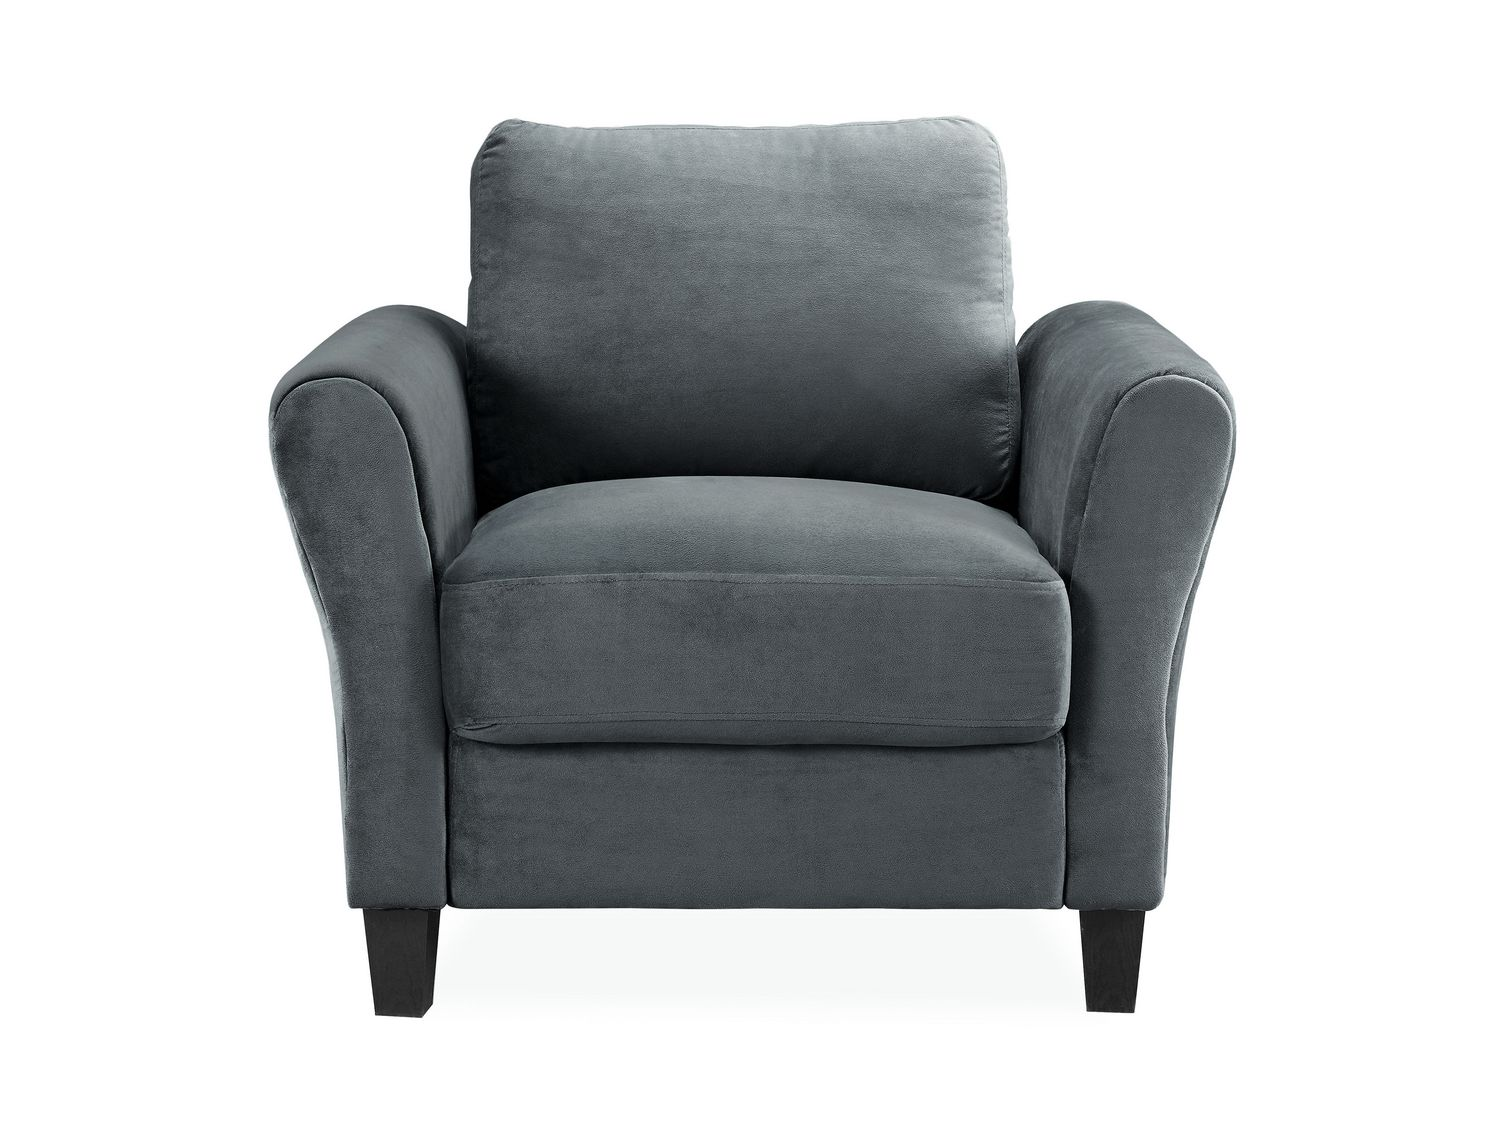 barrister armen raw gray chair living